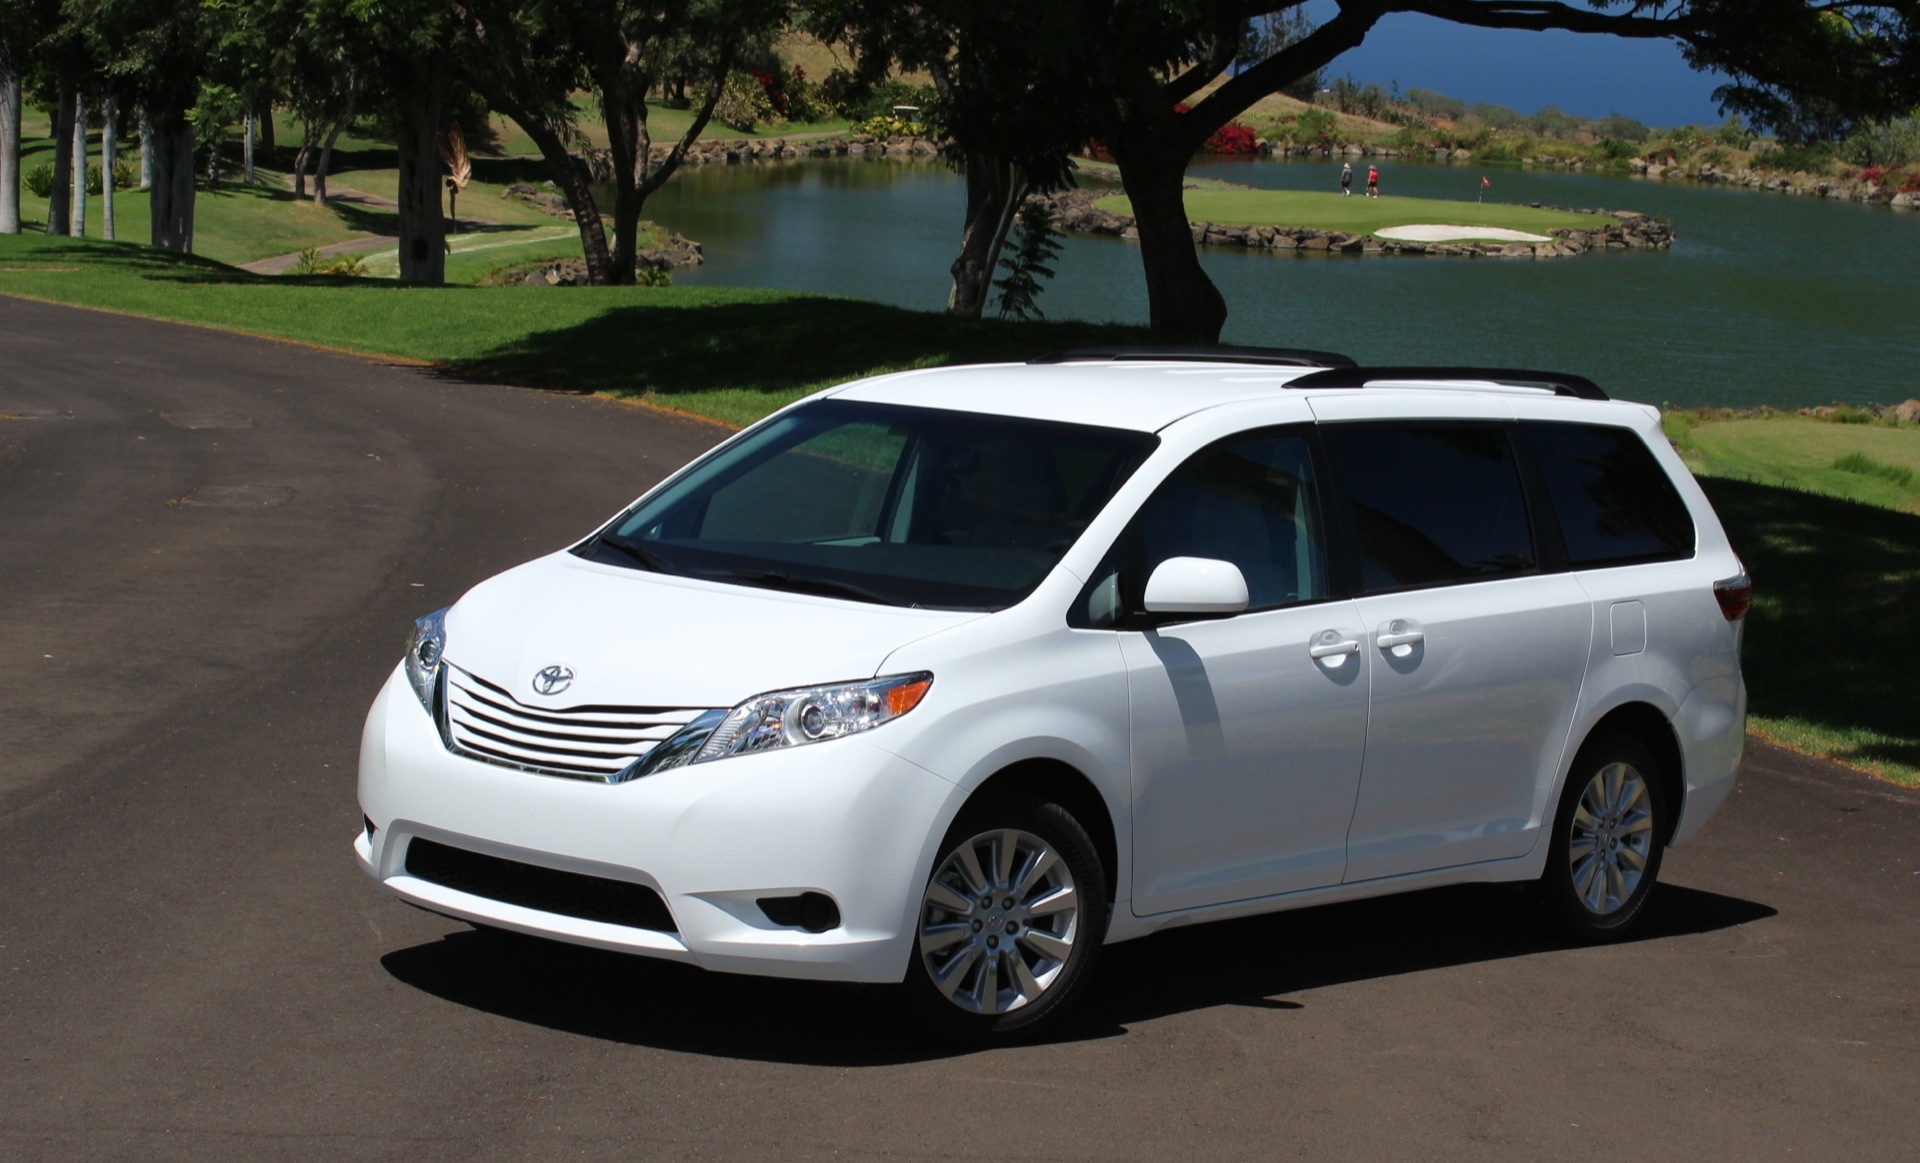 toyota sienna vs honda odyssey compare cars. Black Bedroom Furniture Sets. Home Design Ideas